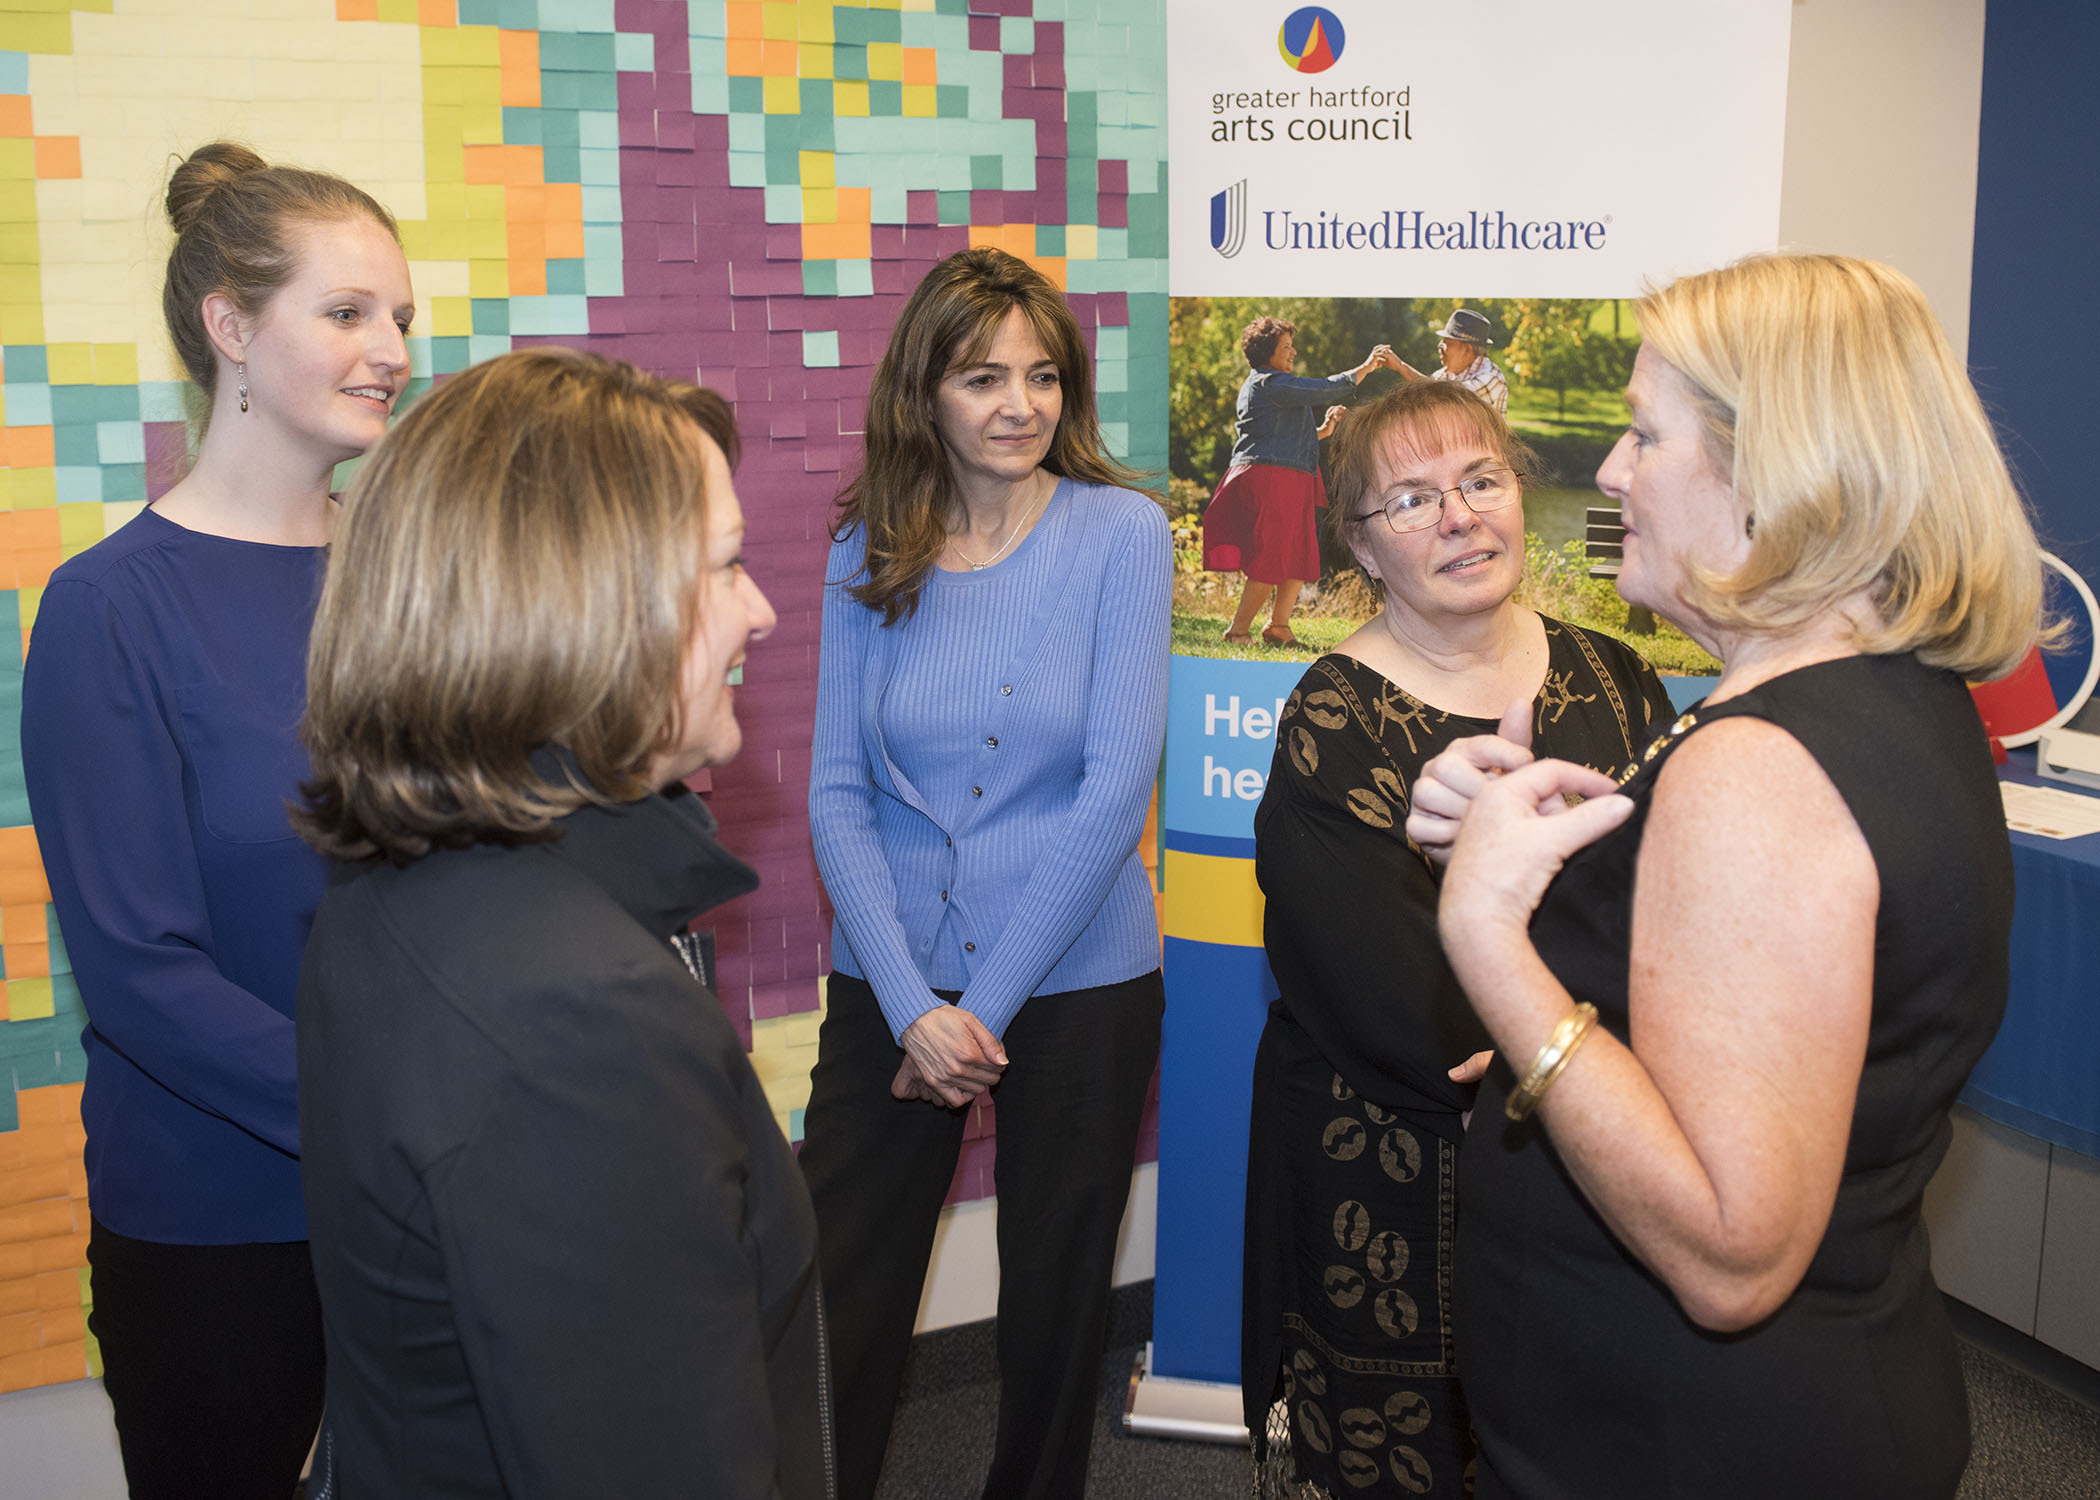 """Elizabeth Winsor, CEO, UnitedHealthcare National Accounts (second from left), and Cathy Malloy, CEO, Greater Hartford Arts Council (GHAC; far right) talk to Katie Hanley from OakHill, Susan Mazar from Charter Oak Cultural Center and Karin Dionne from Harc, Inc. (left to right) about their 2017 GHAC """"Arts + Wellness"""" Grants programs. Grants, supported by UnitedHealthcare, were given to four local arts organizations to produce programs that use creativity to enrich the lives and enhance the health and well-being of adults with physical disabilities and their families. [PHOTO CREDIT: Alan Grant, Digital Creations]"""